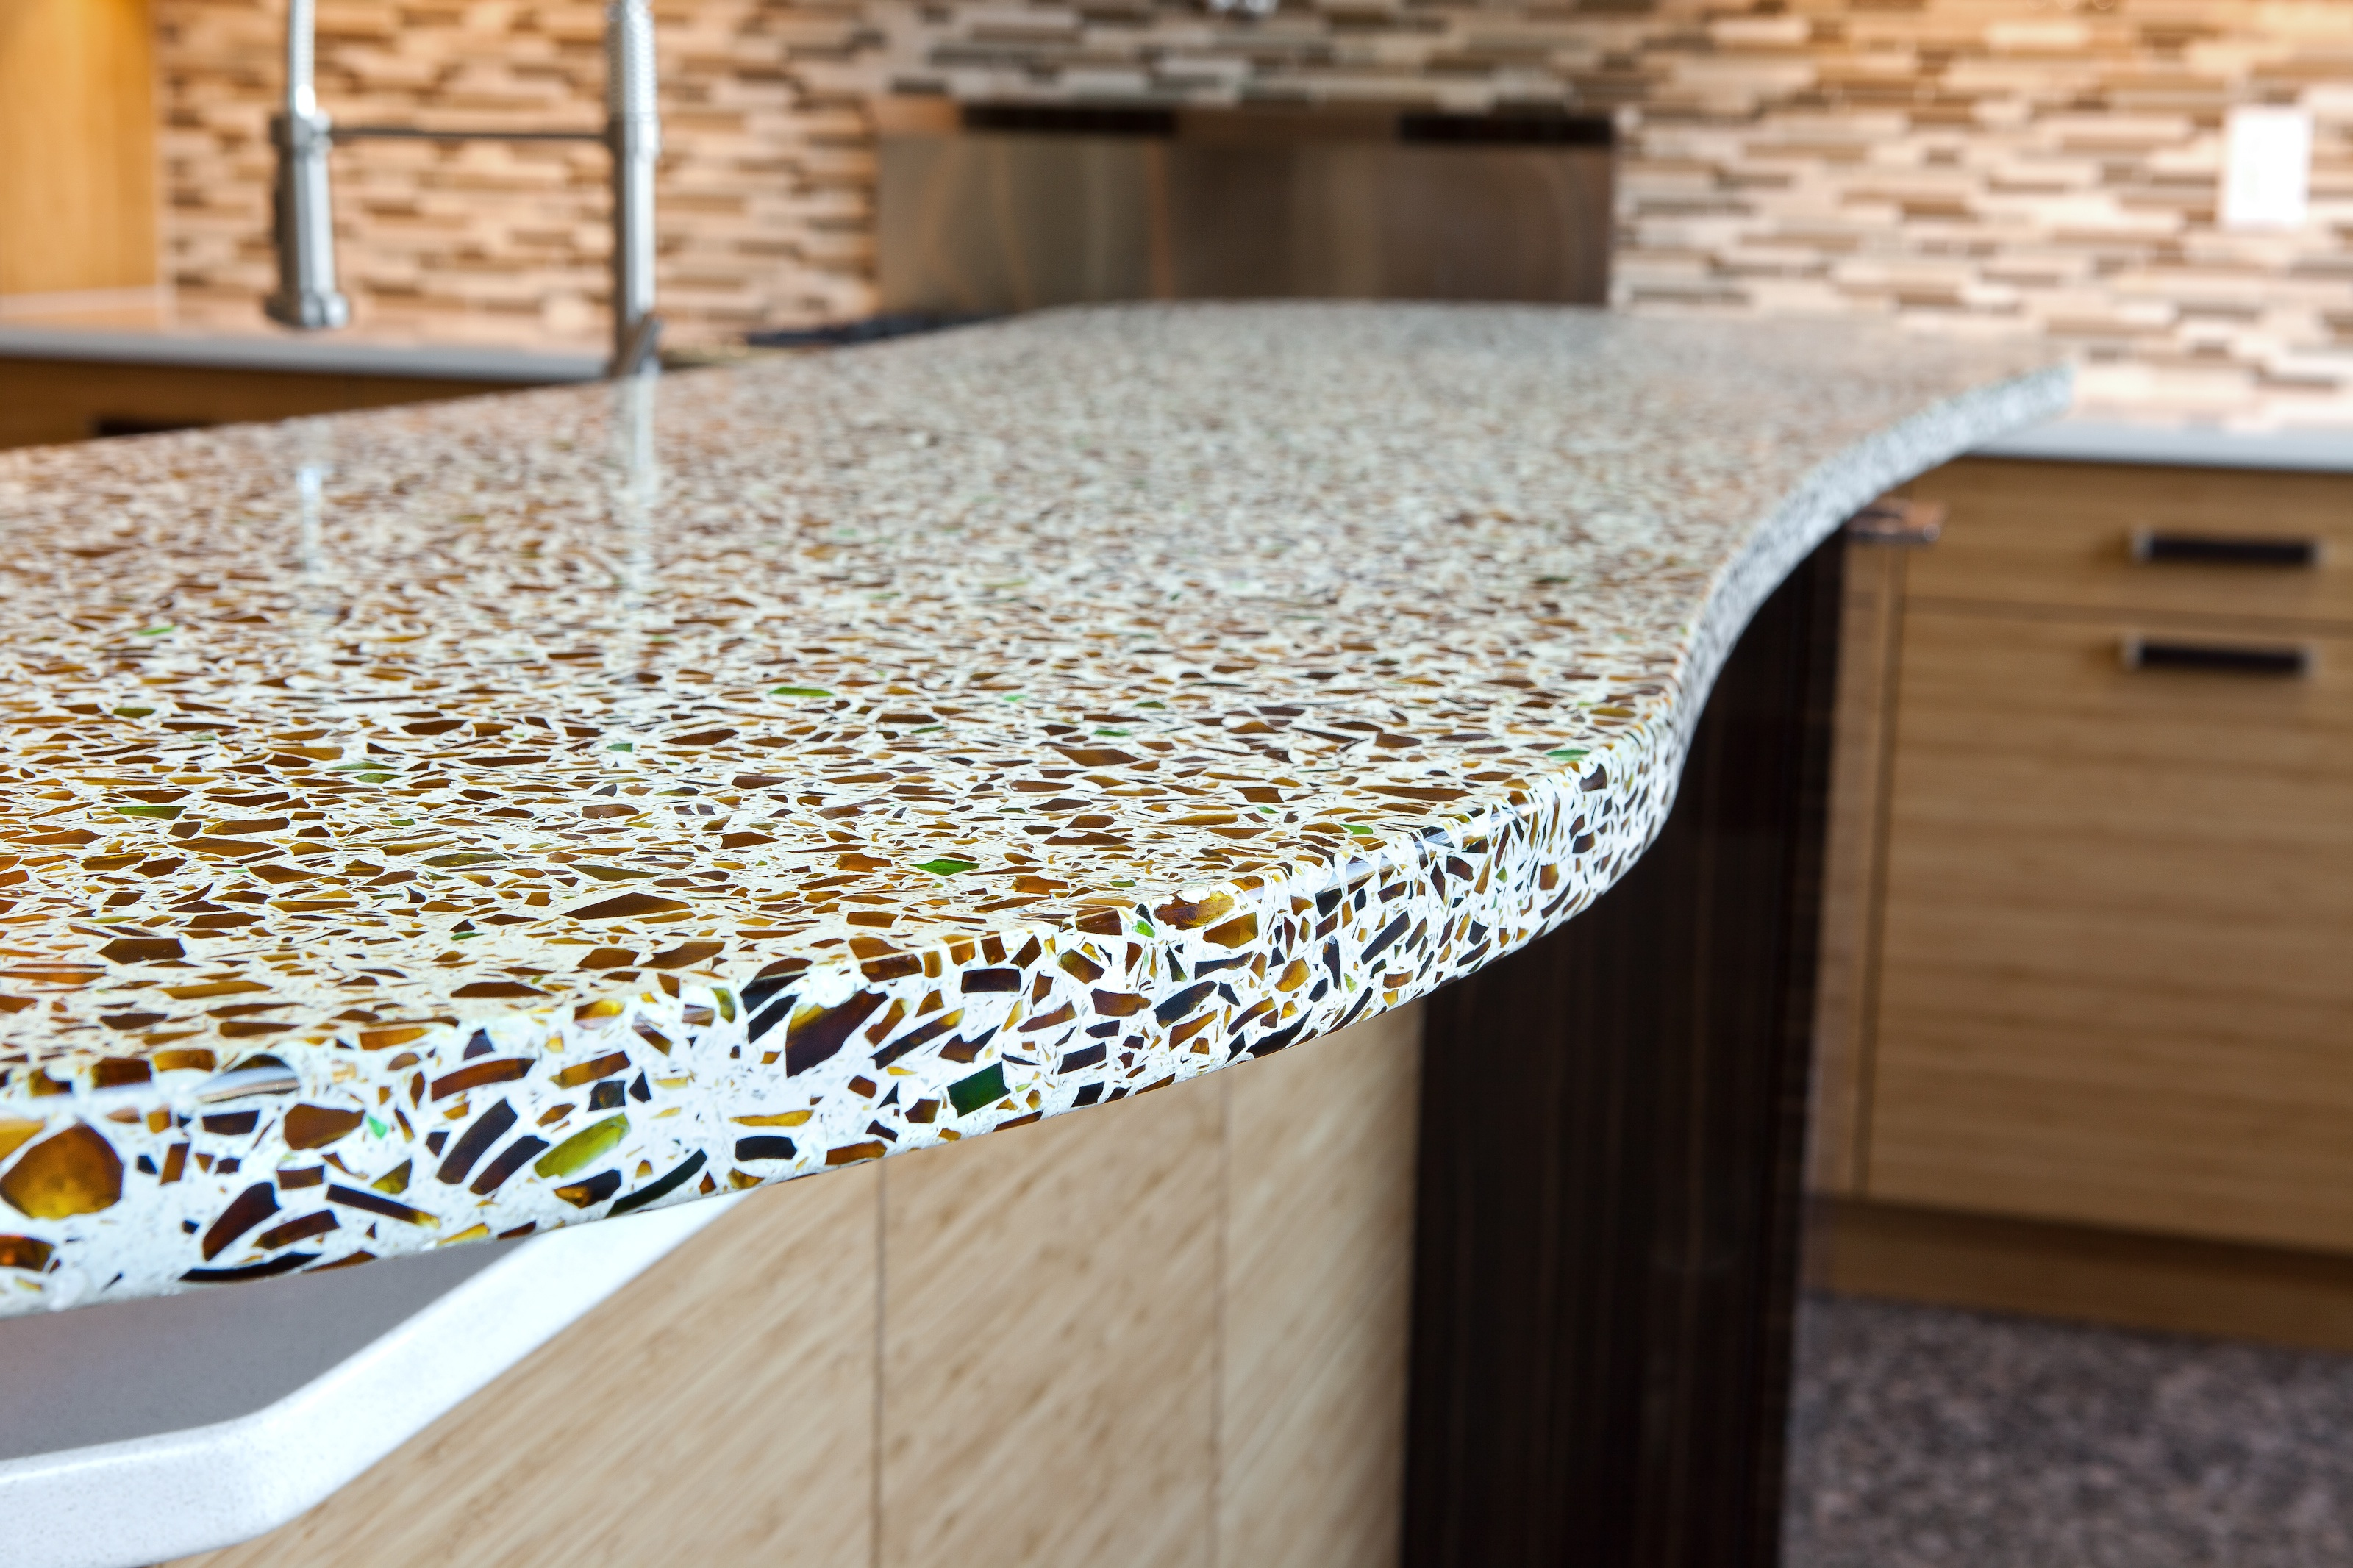 r recycled countertop glass materials strength countertops homeadvisor types sustainability material of